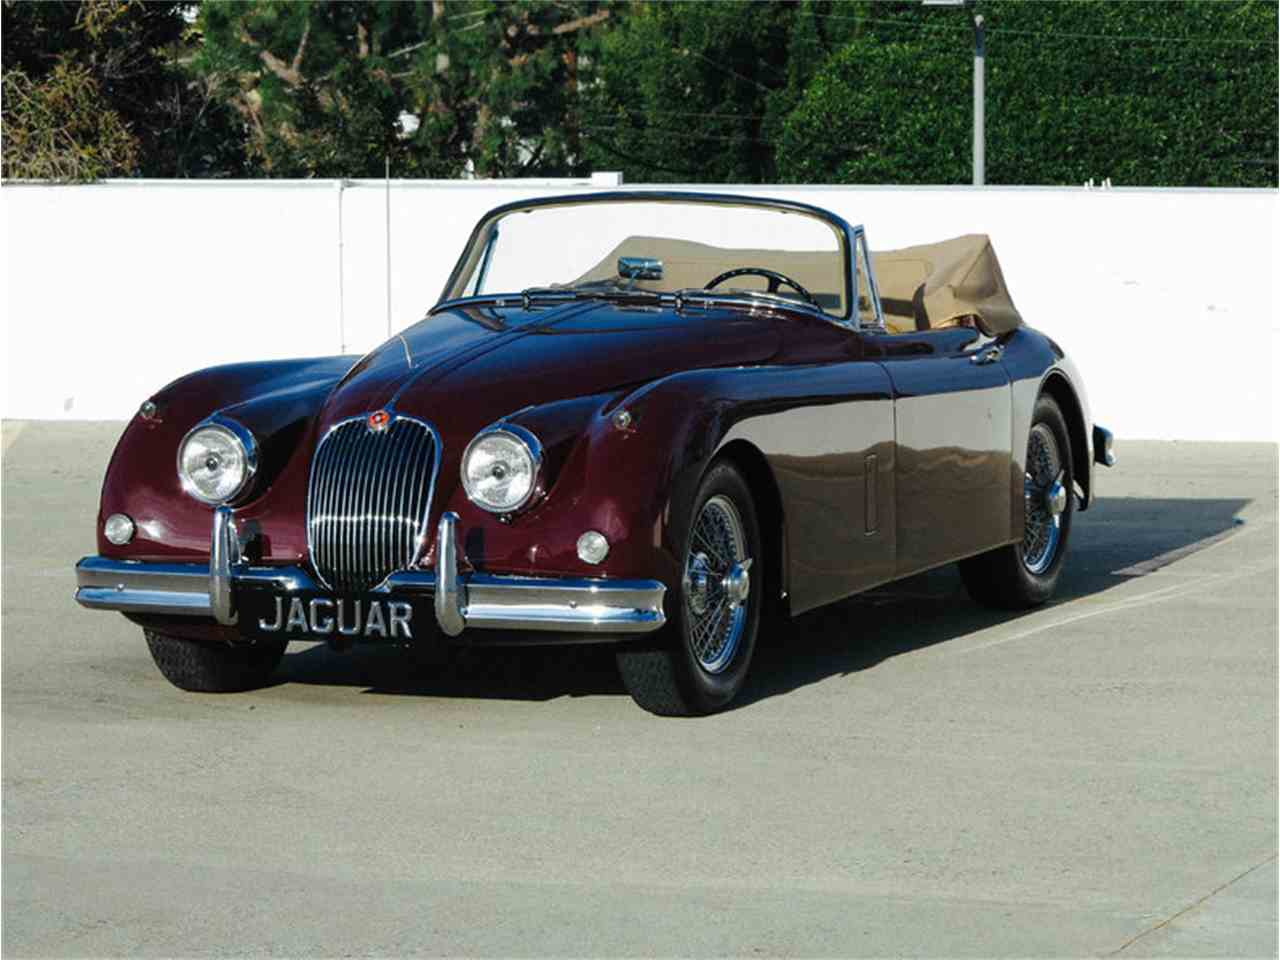 red market cars jaguar for sale classic front en driver xk